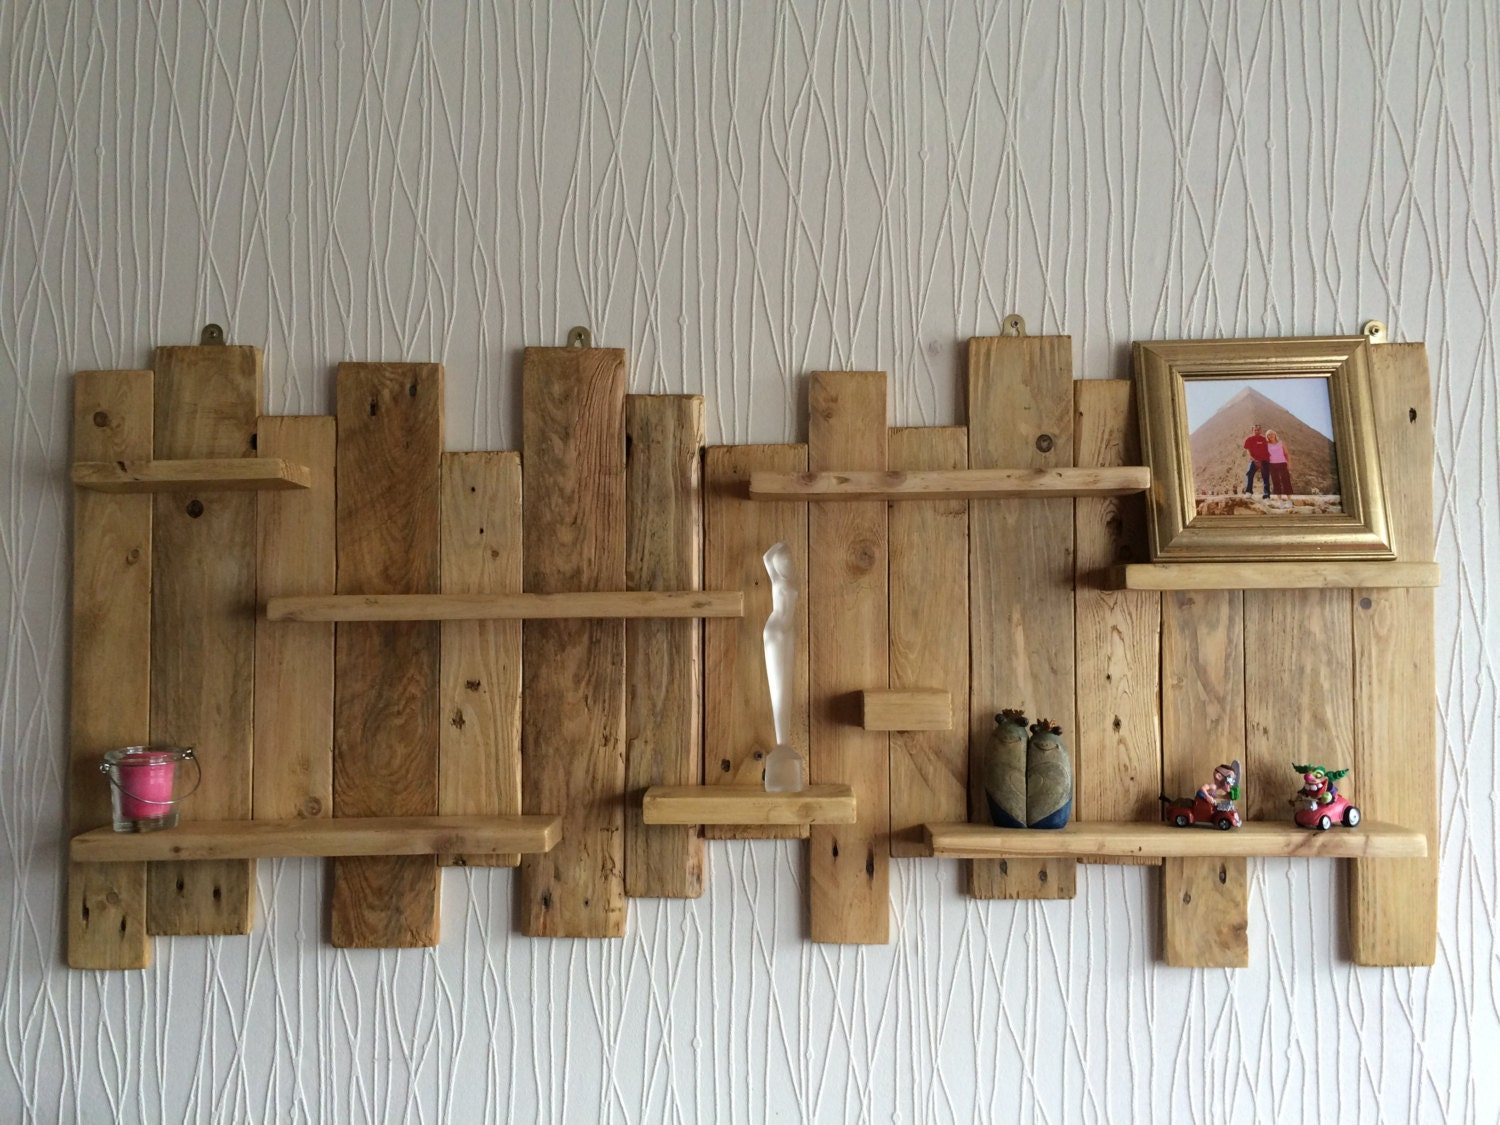 home brackets reclaimed steel shelf lighting with wall wood shelves decor